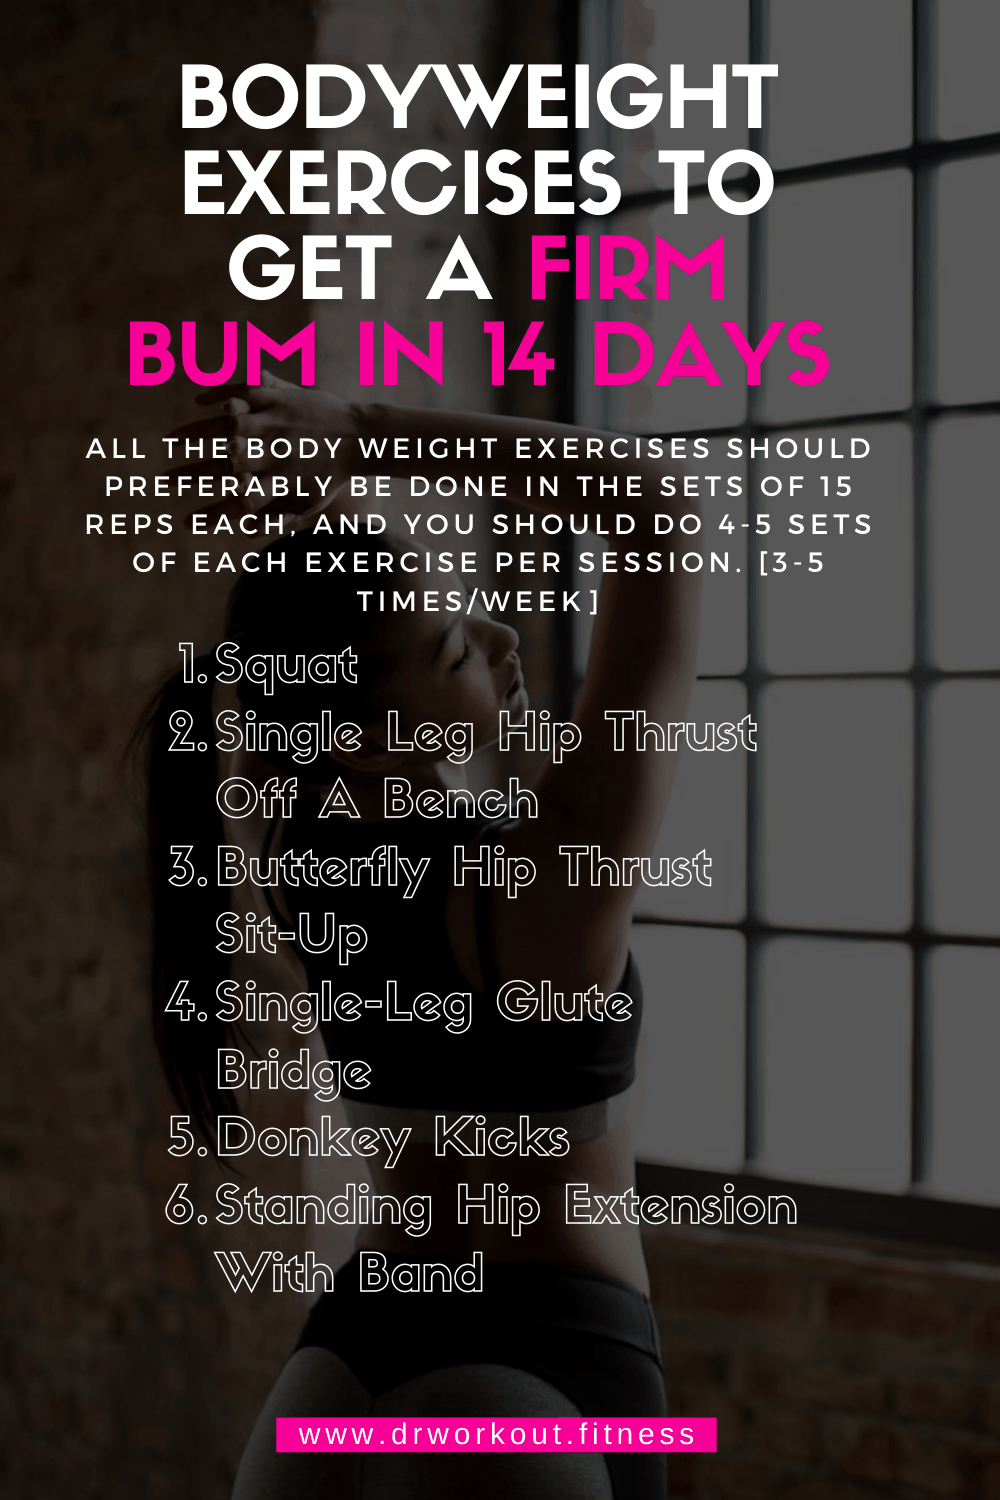 Bodyweight exercises to get a firm bum in 14 days